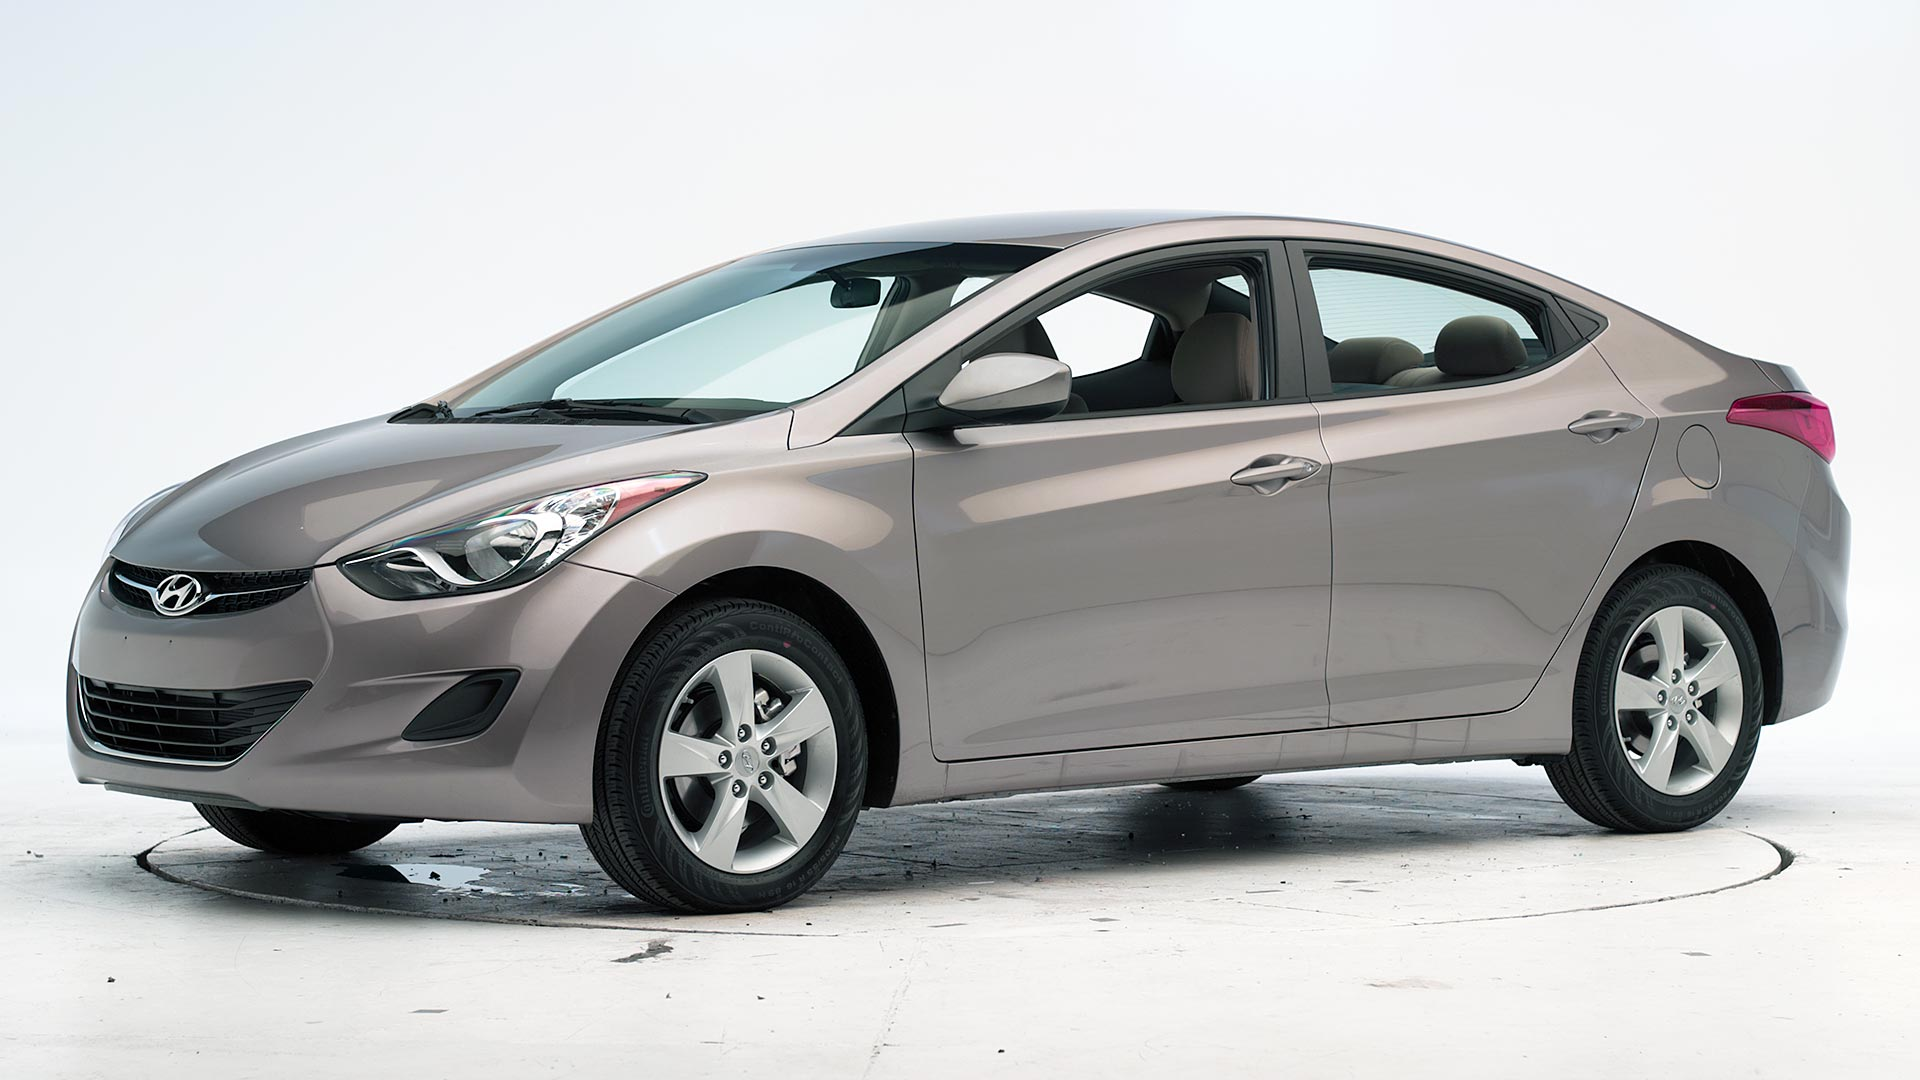 2011 Hyundai Elantra 4-door sedan